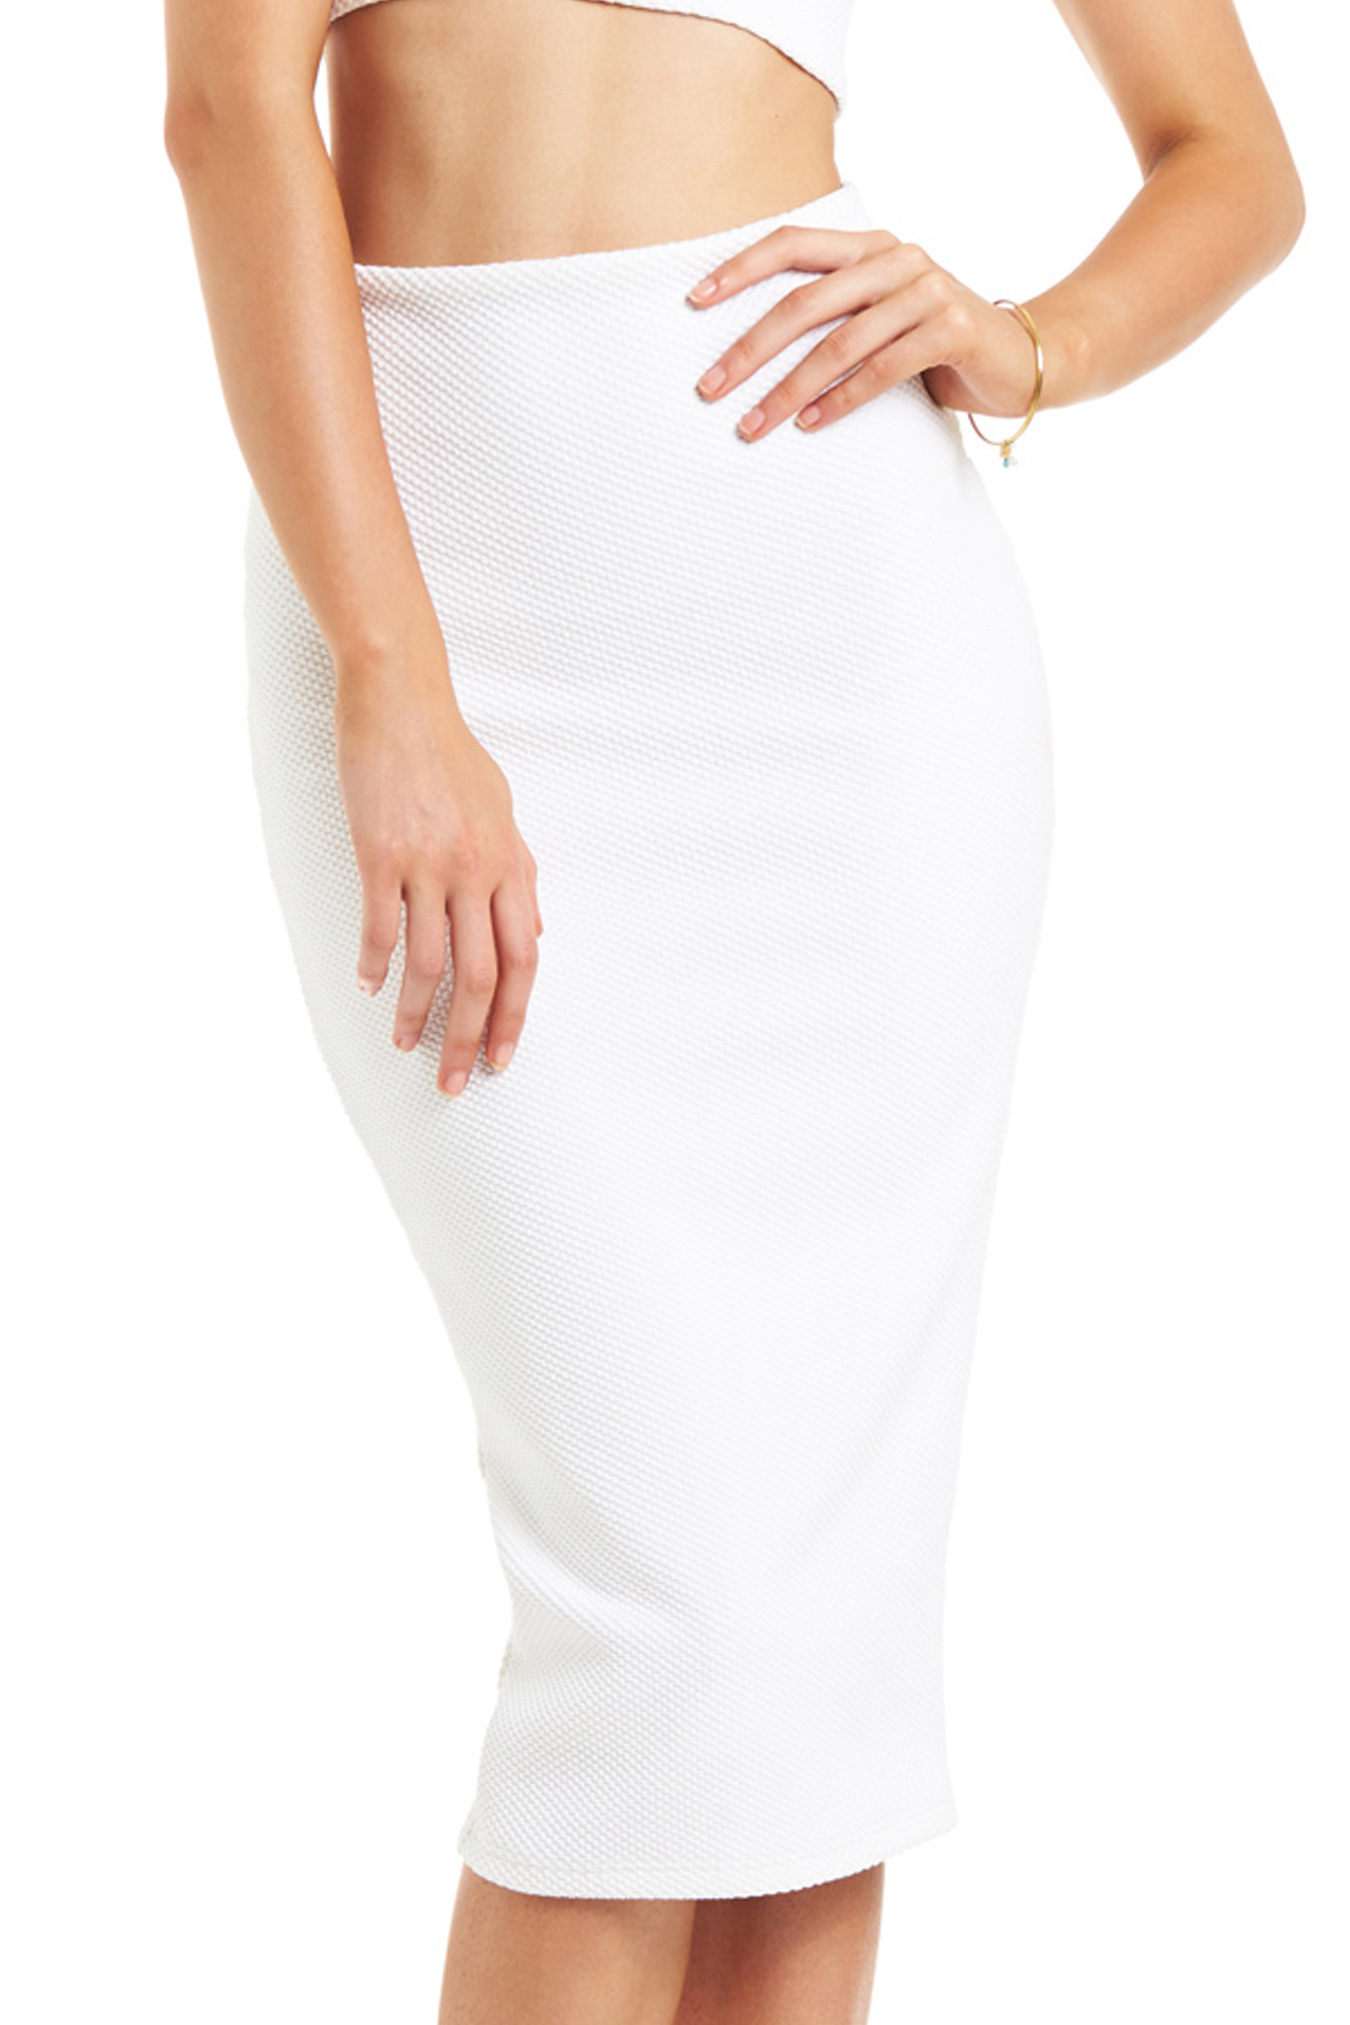 Pucker Up Pencil Skirt : Buy Designer Dresses Online at Nookie